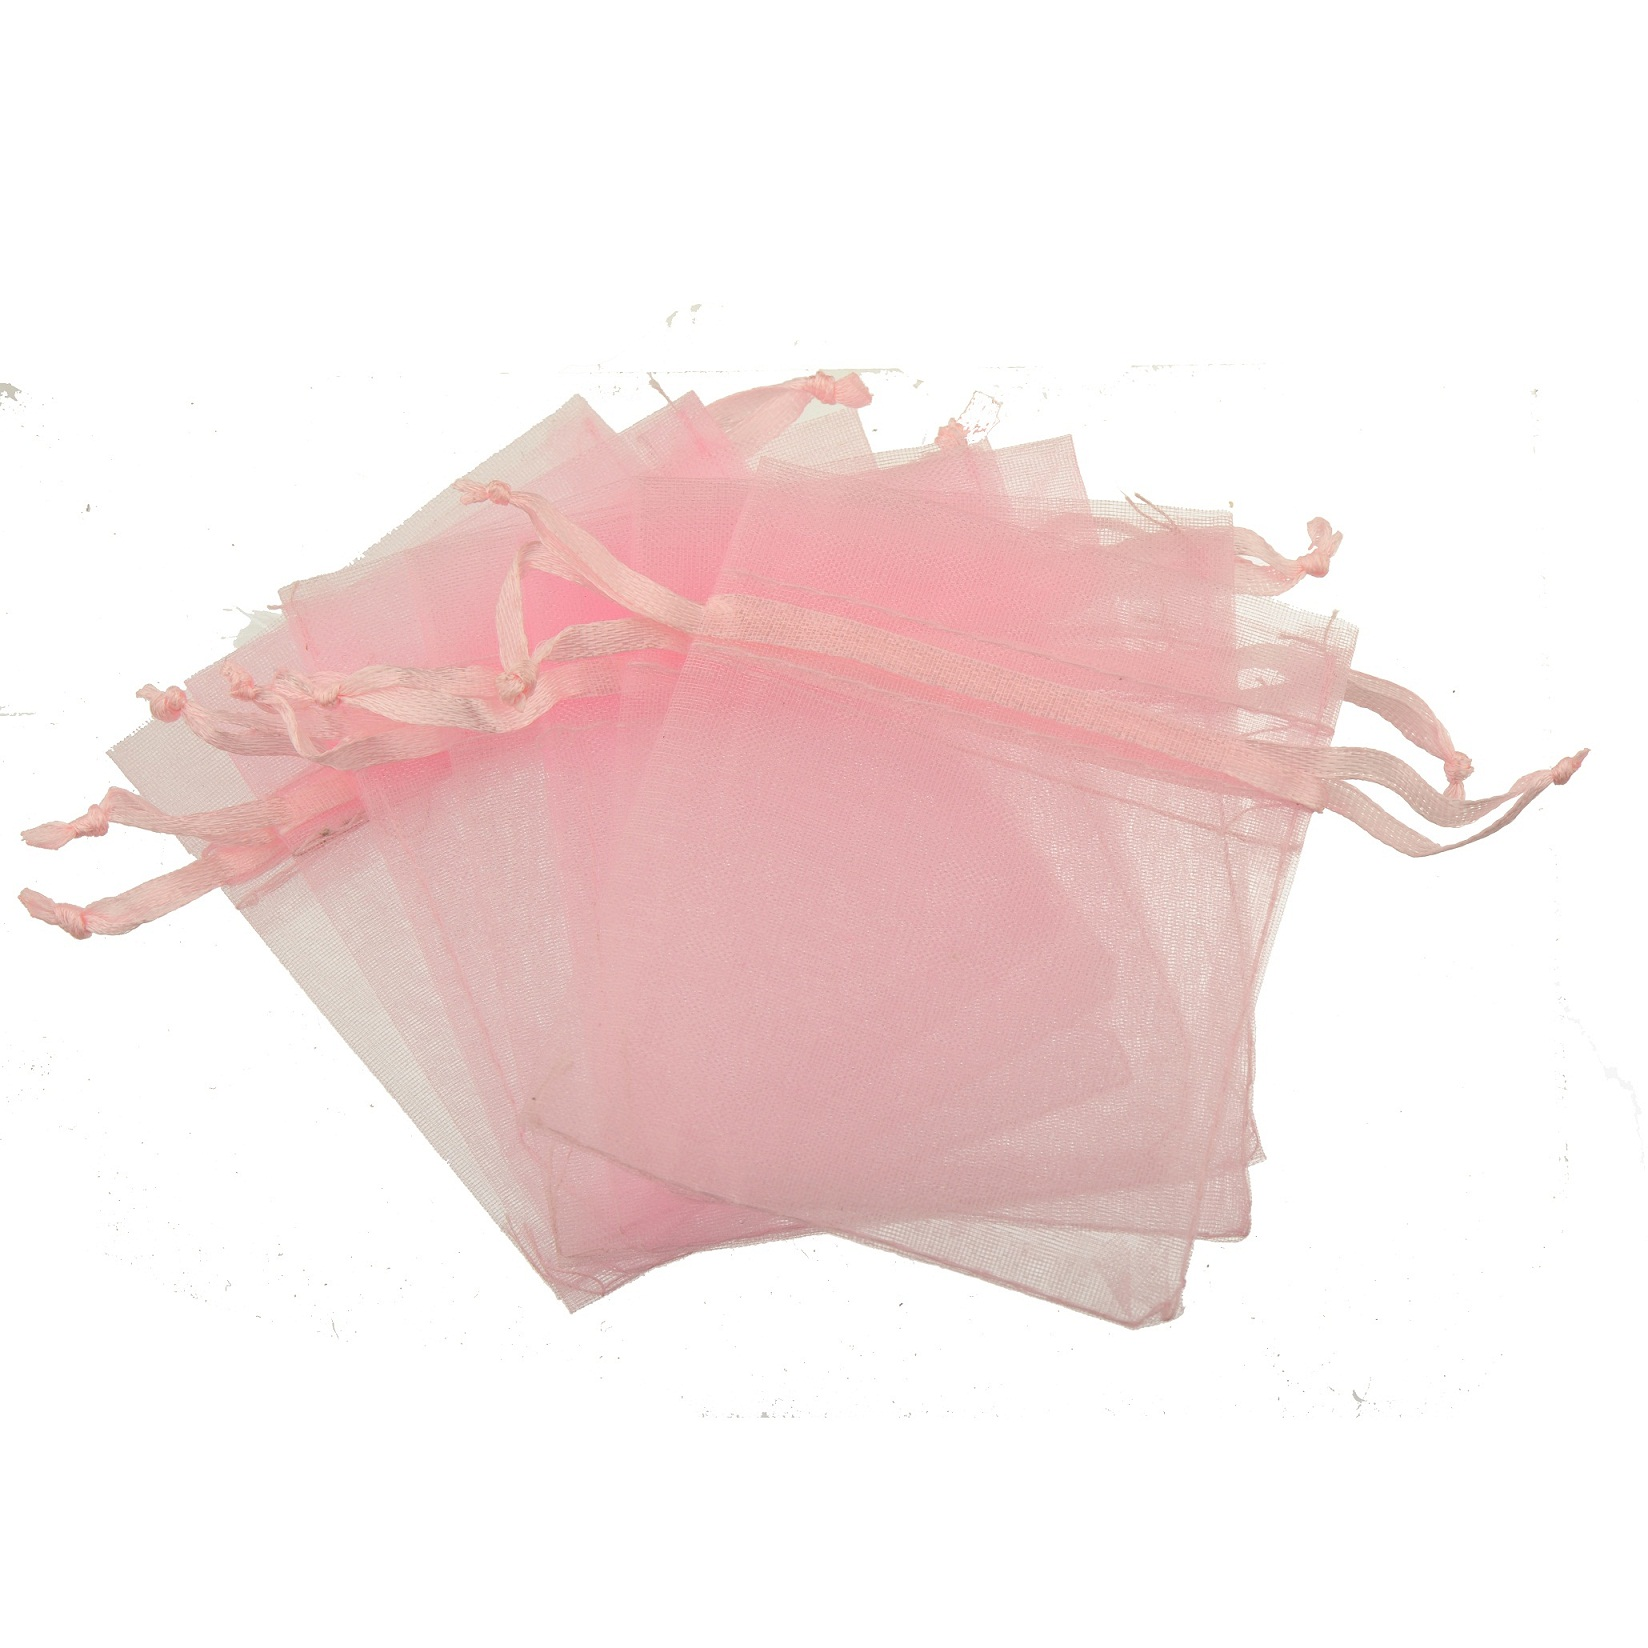 Candy Bags Lucency Organza Drawstring Pink Wholesale Crafts Jewelry Packaging Classic Fine Clear Show Soft Goldfeu Supplier 2020